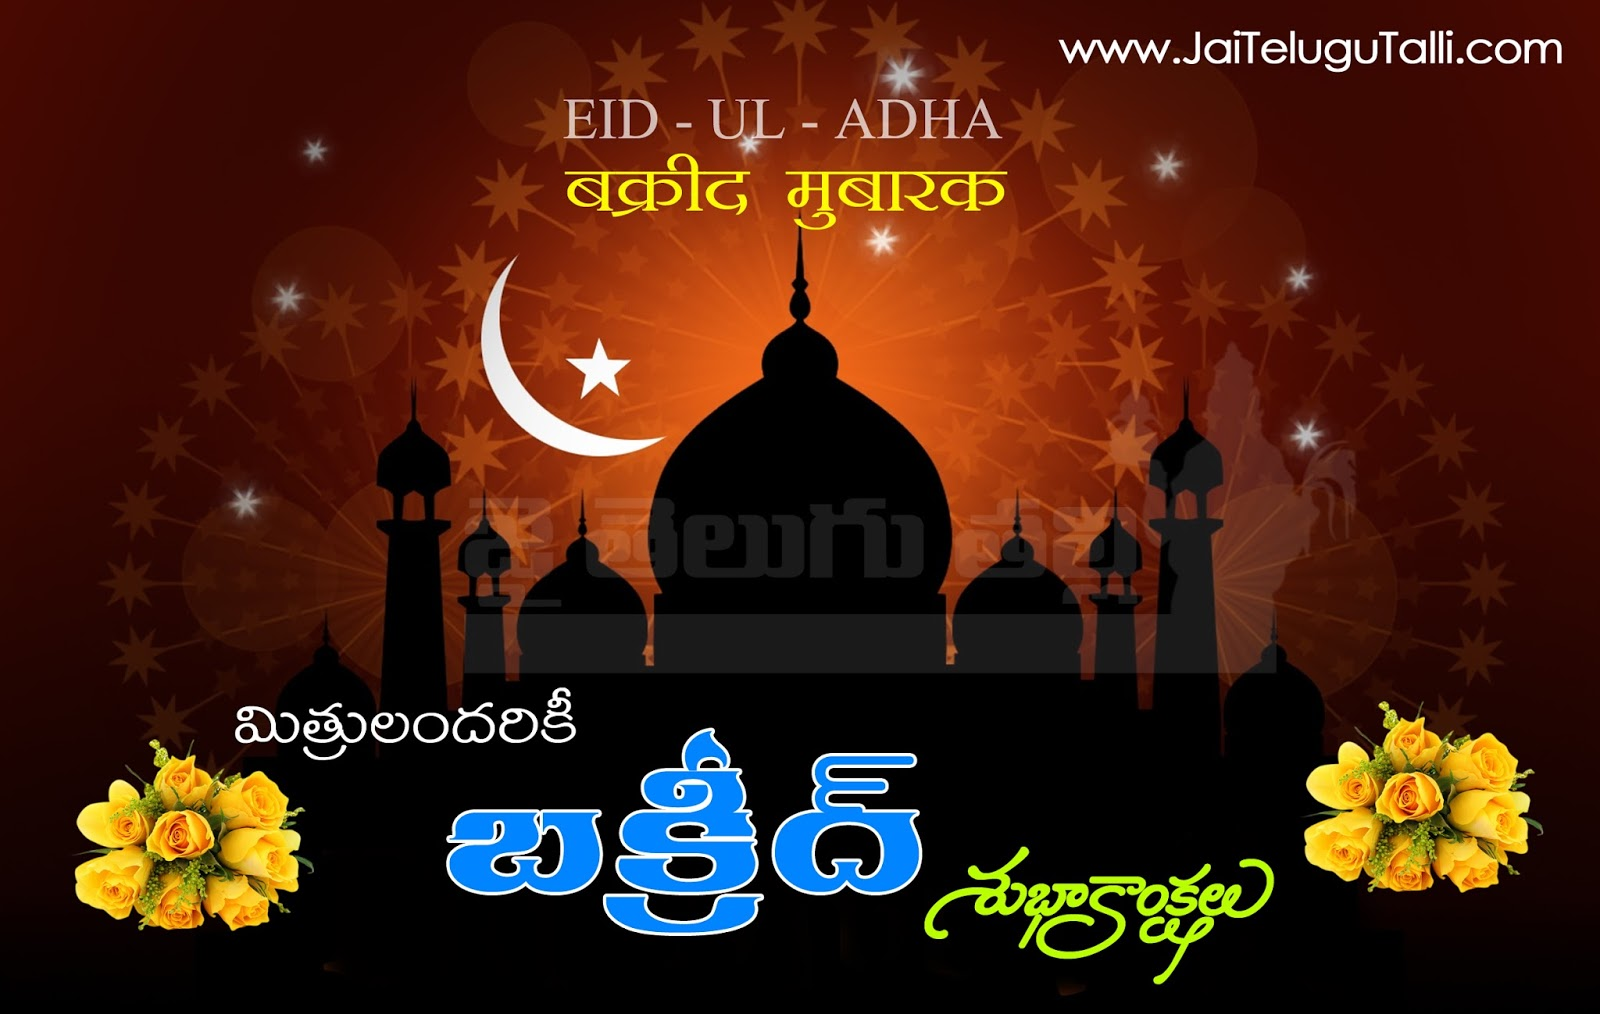 Nice Telugu Wishes And Hd Pictures Happy Bakri Eid Festival Greeting